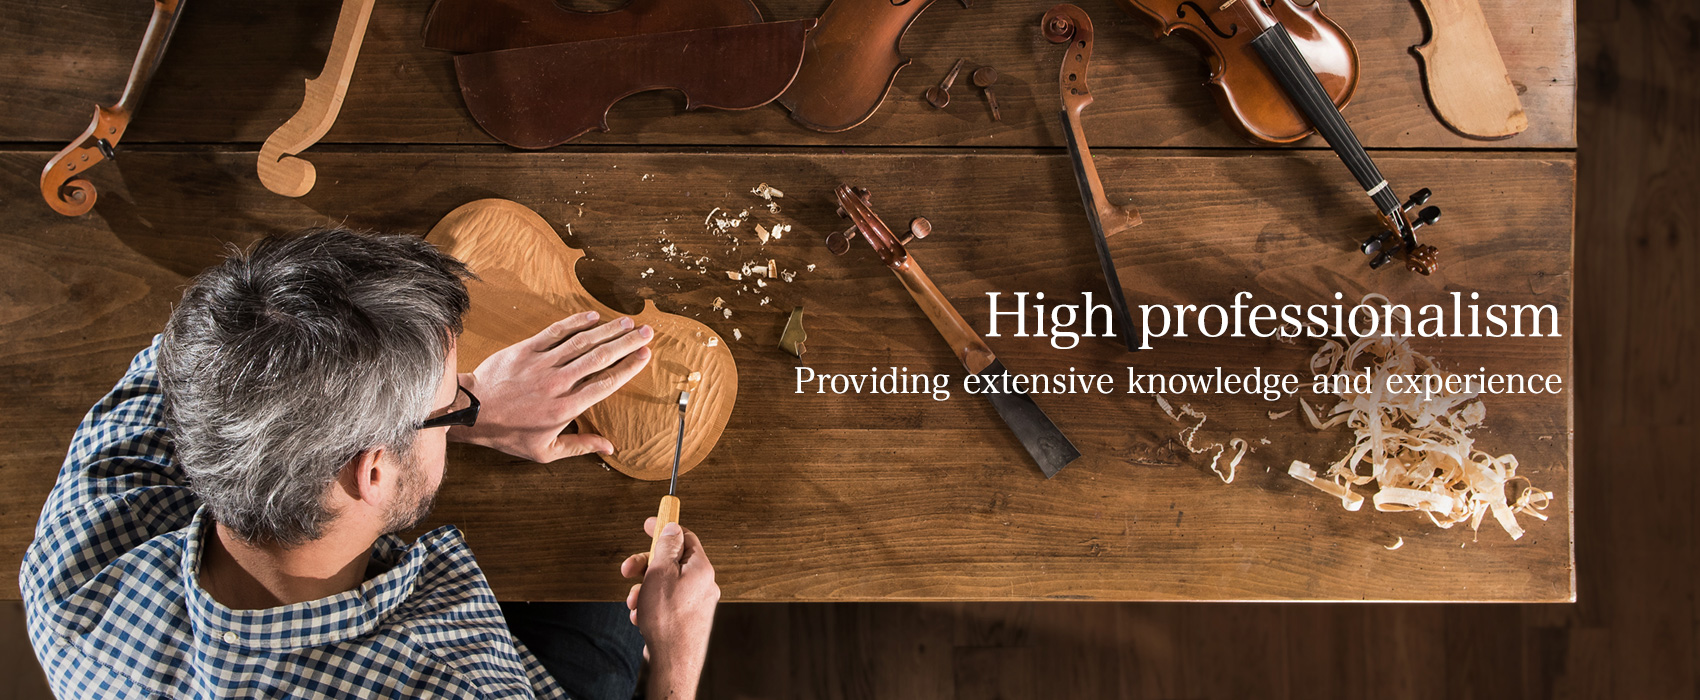 High professionalism — Providing extensive knowledge and experience